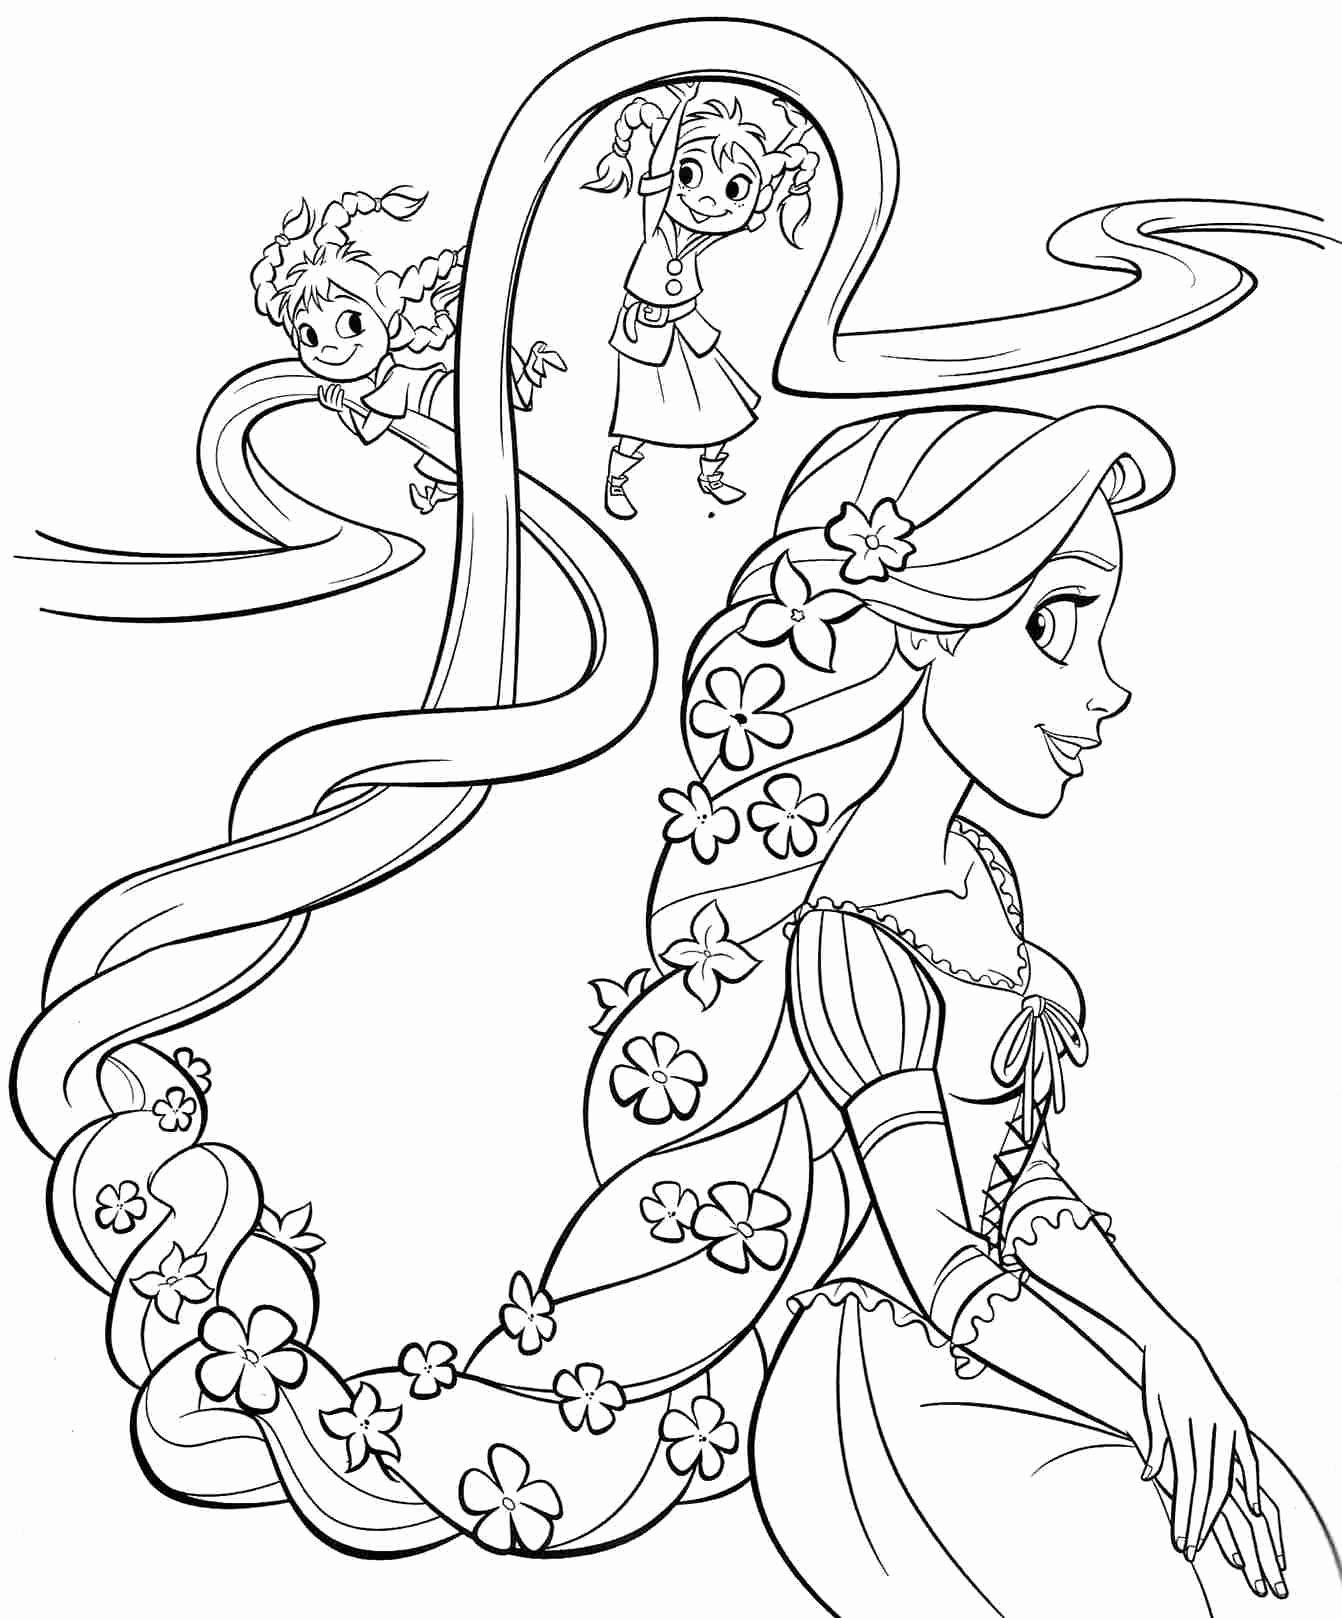 Pin On Coloring Pages For Kids Disney